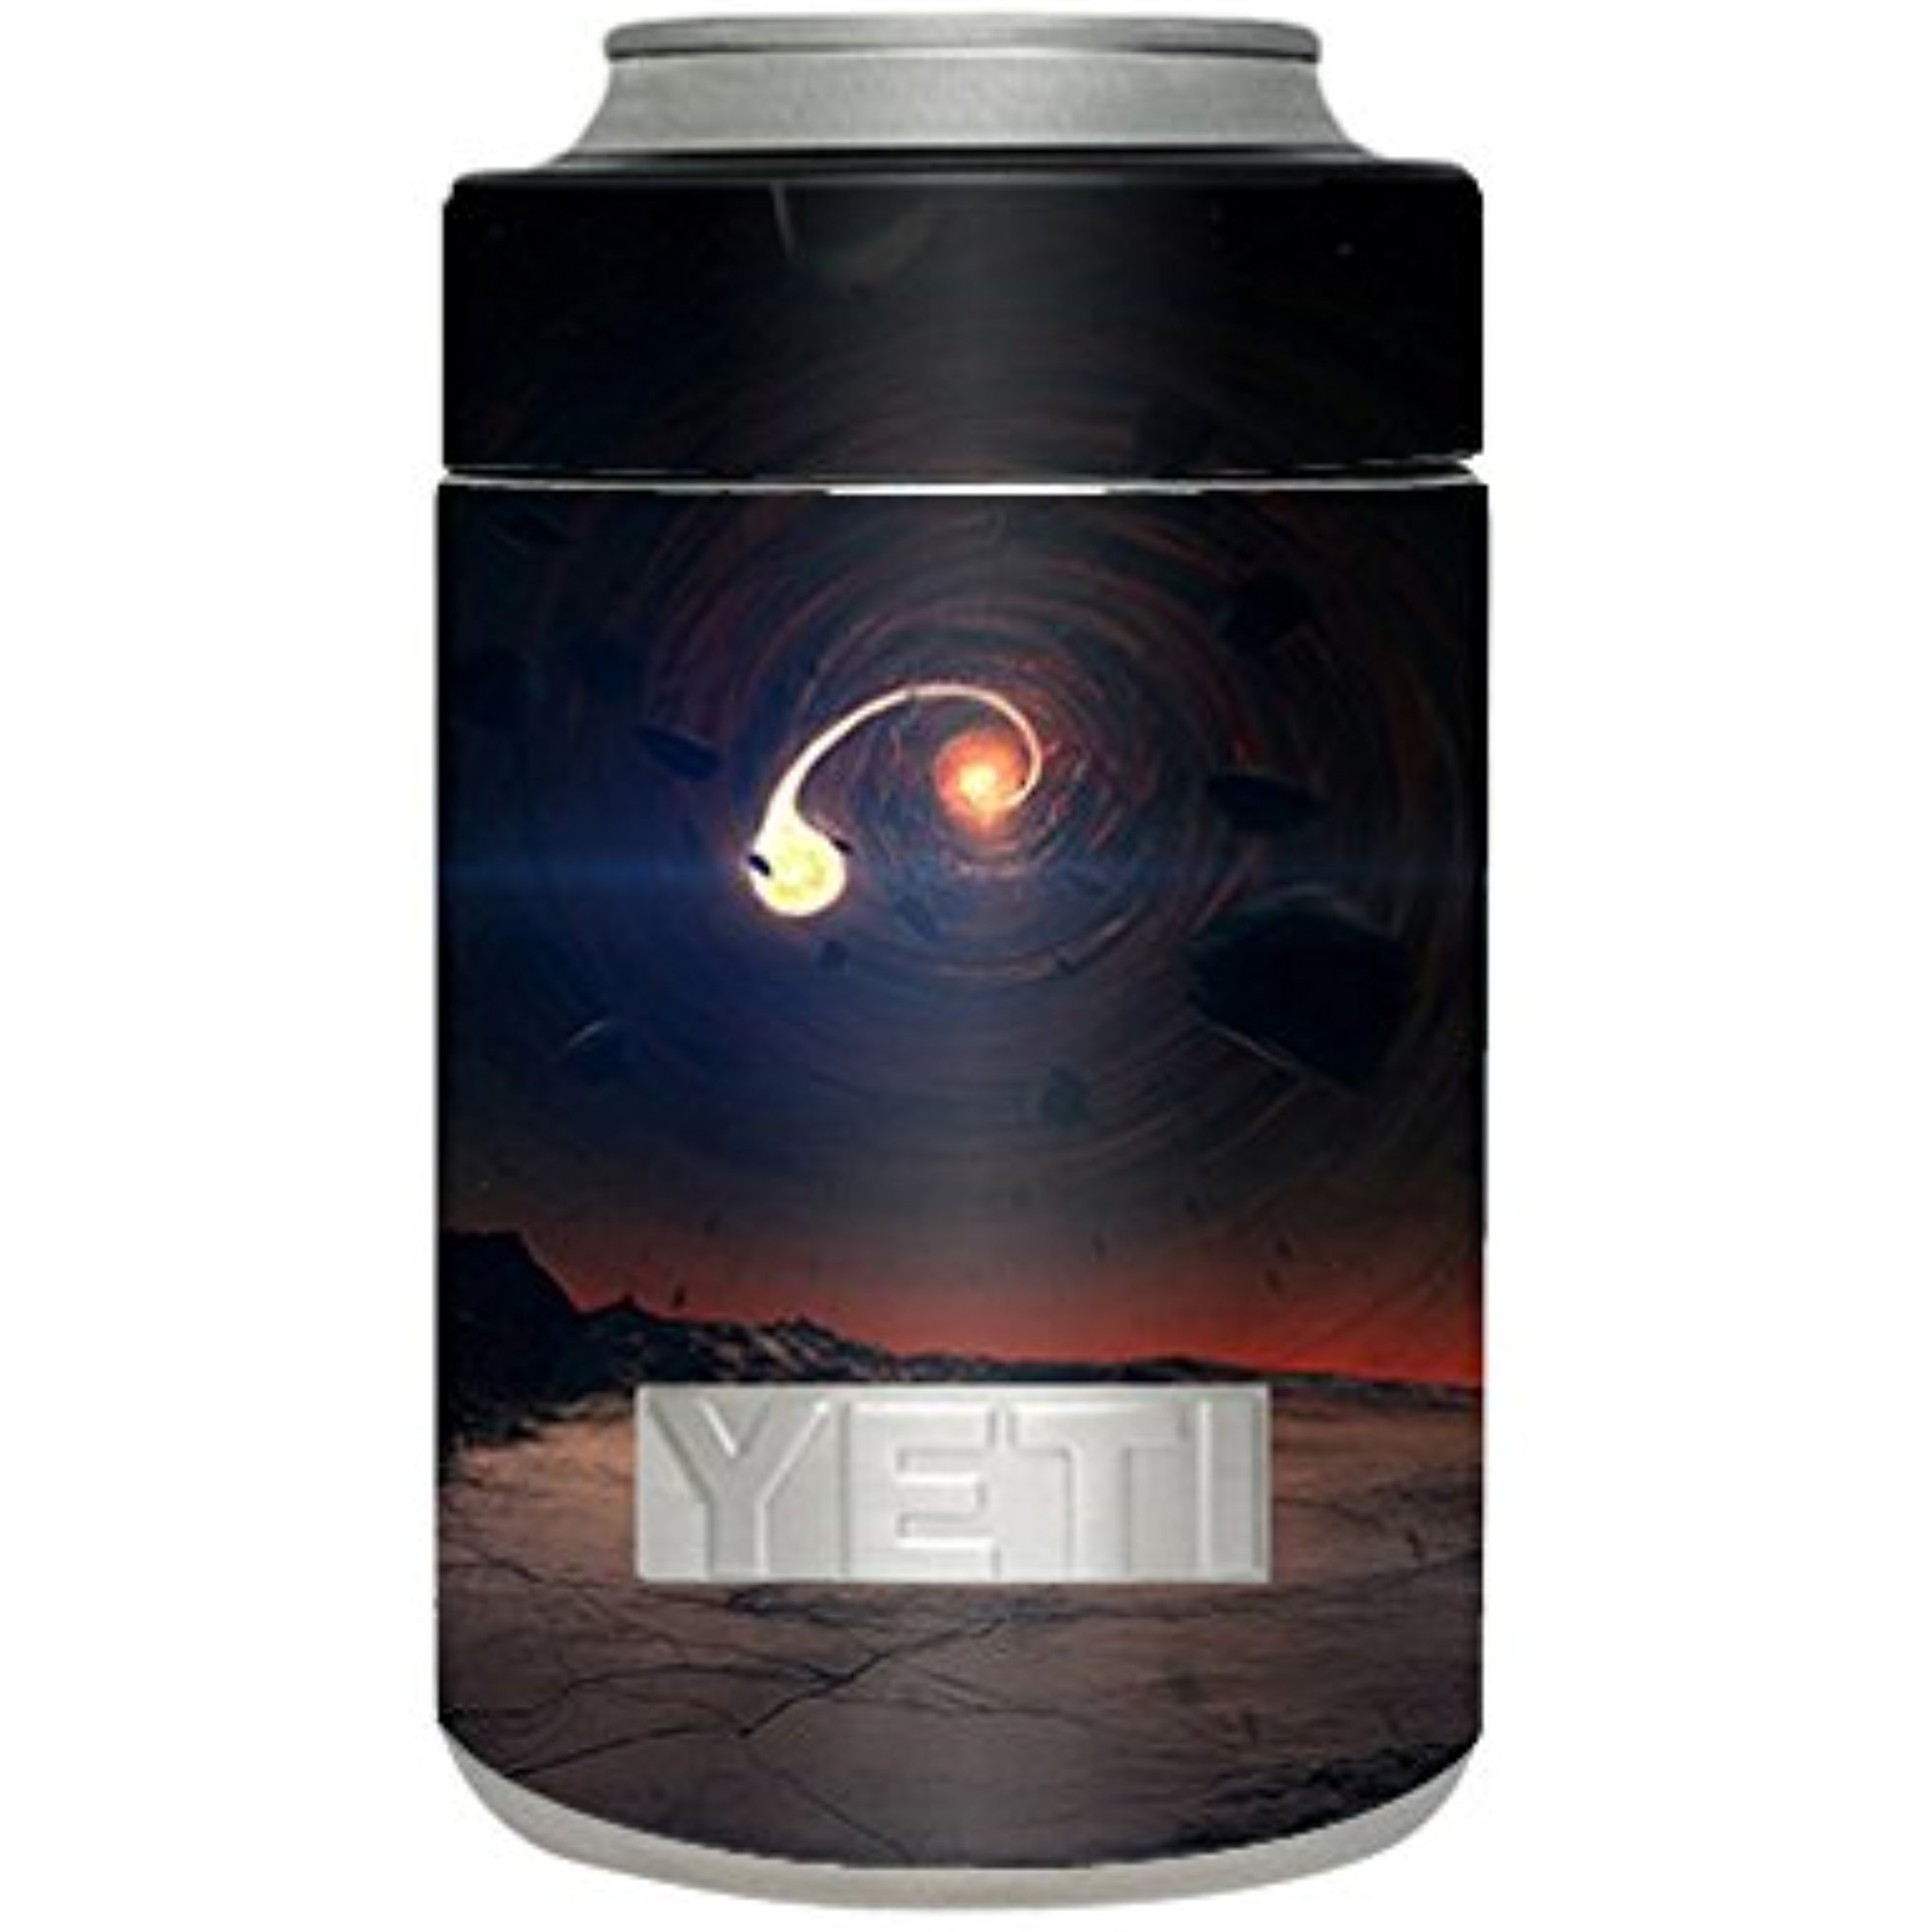 Skin Decal Vinyl Wrap for Yeti Rambler Colster Stickers Skins Cover Cup / black hole scene